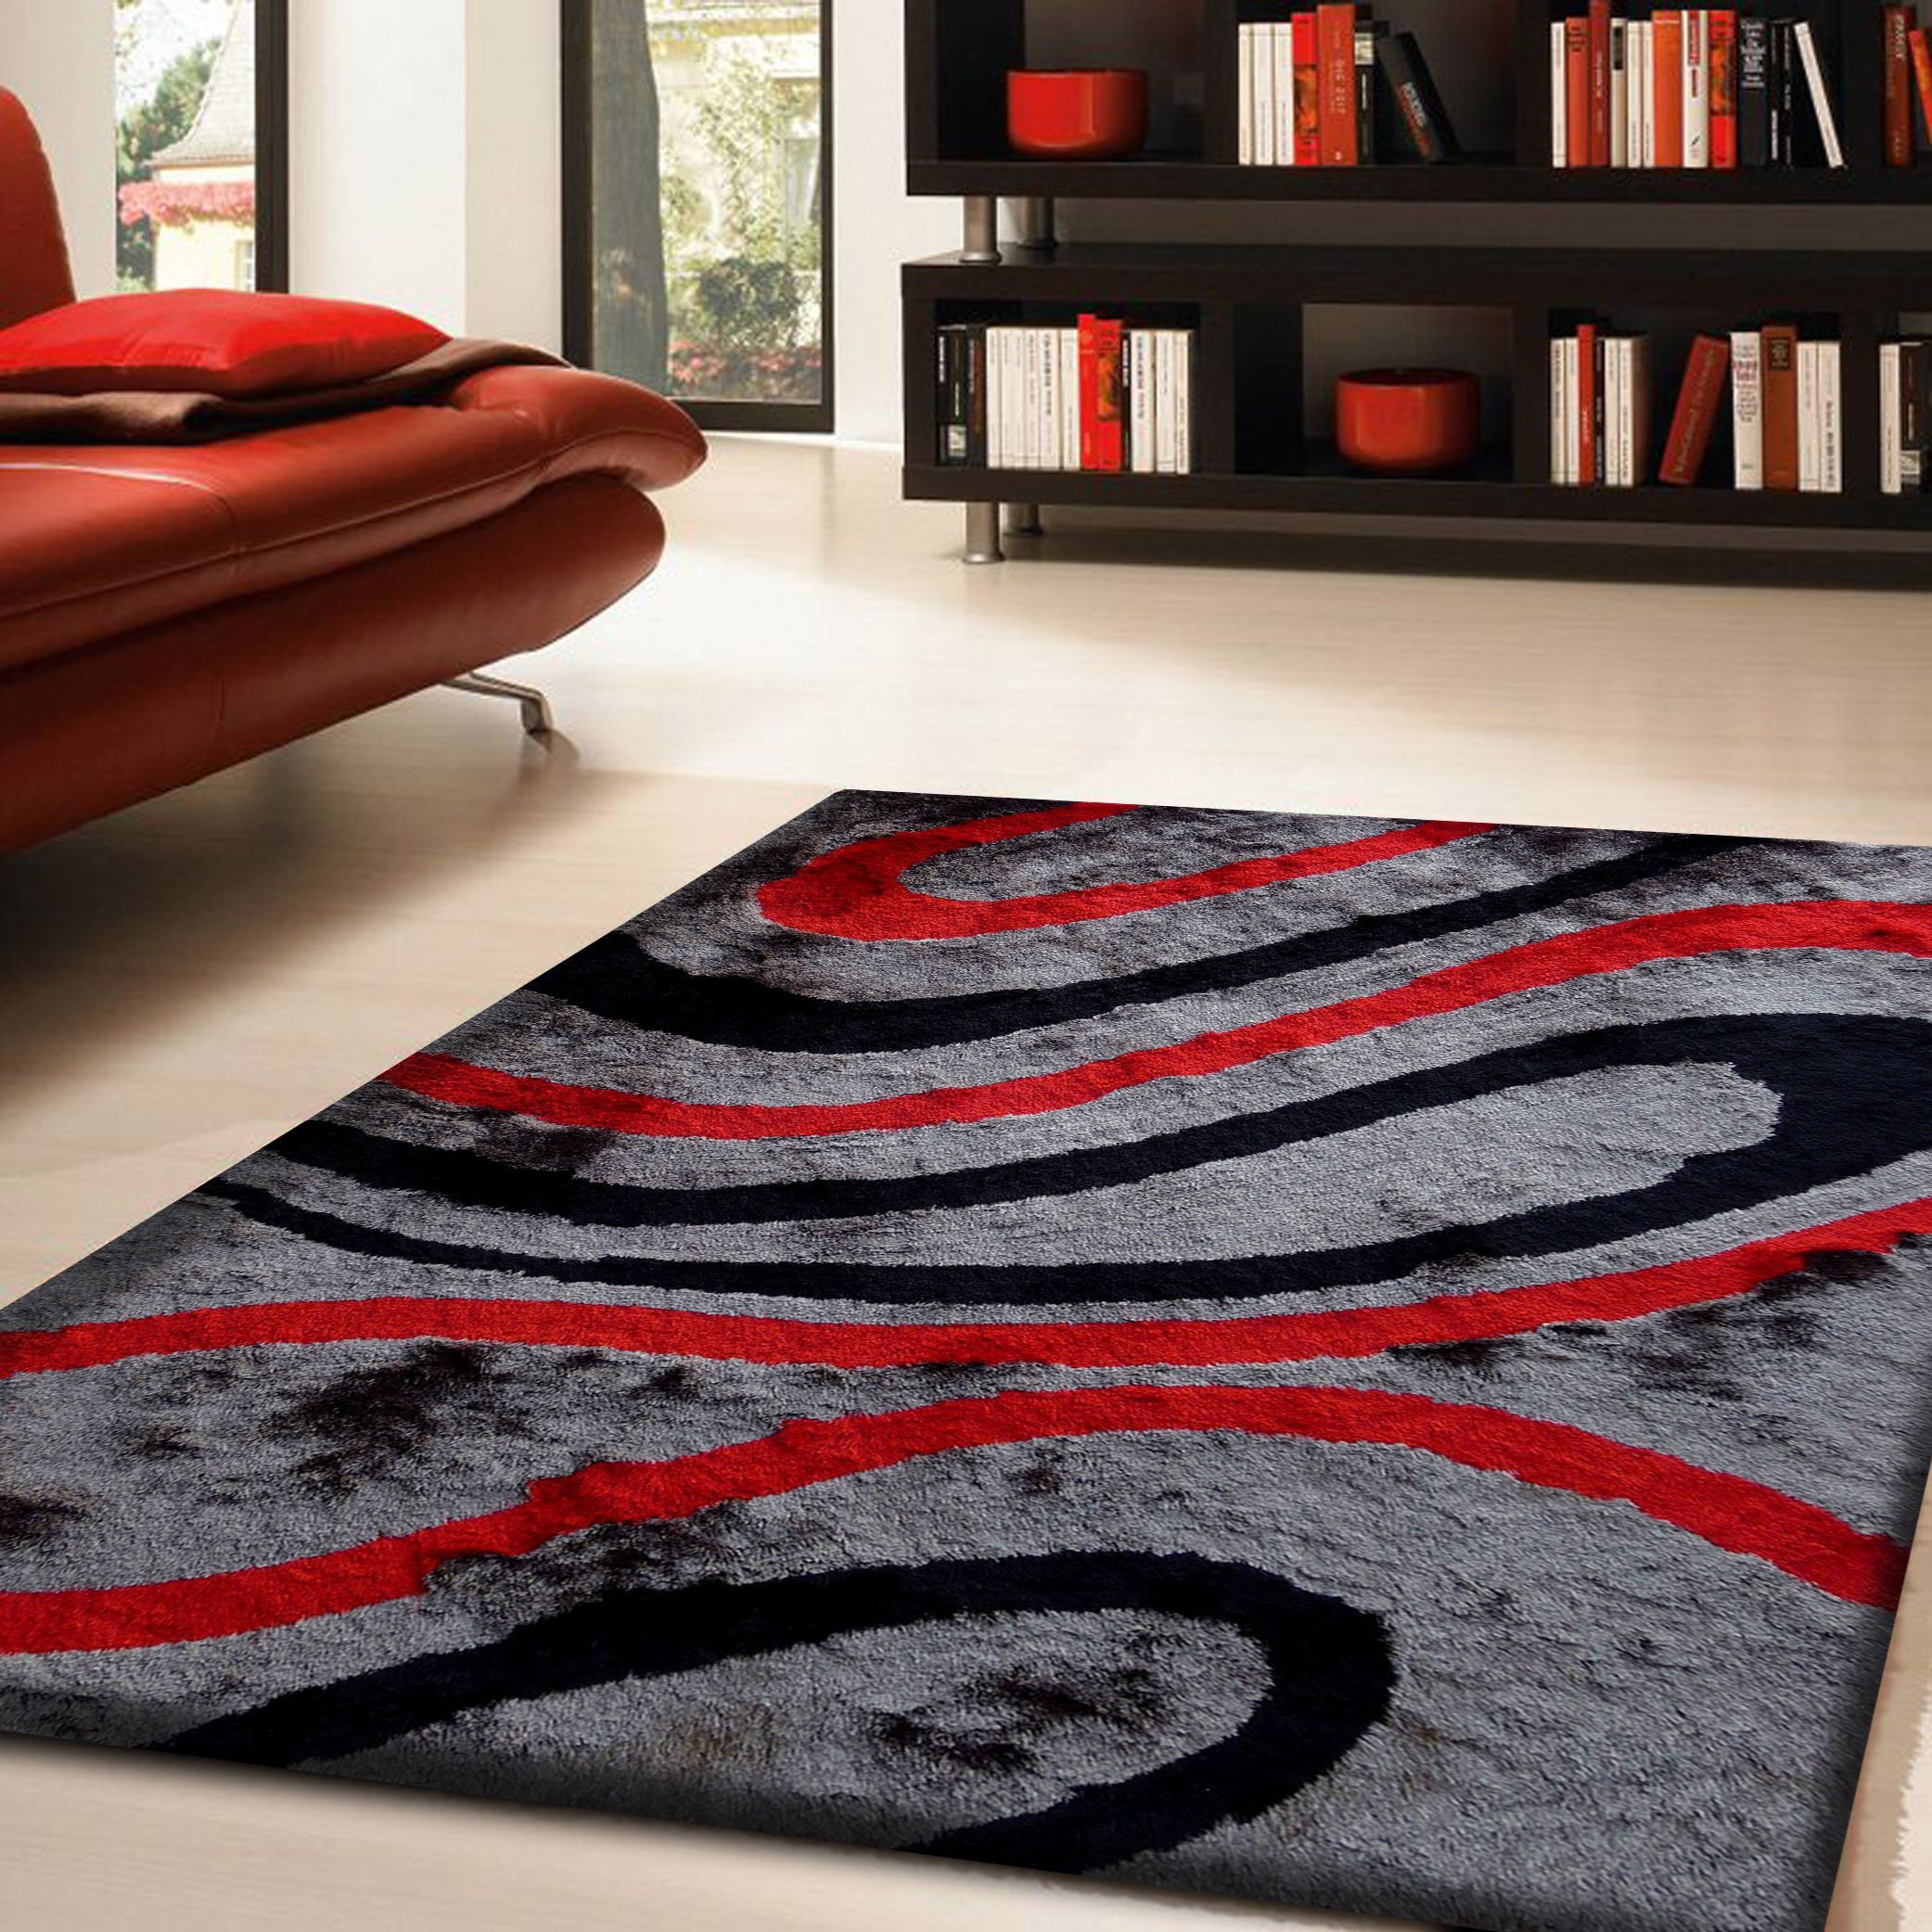 Gy Viscose Vibrant Ribbon Hand Tufted Area Rug Red Gray White